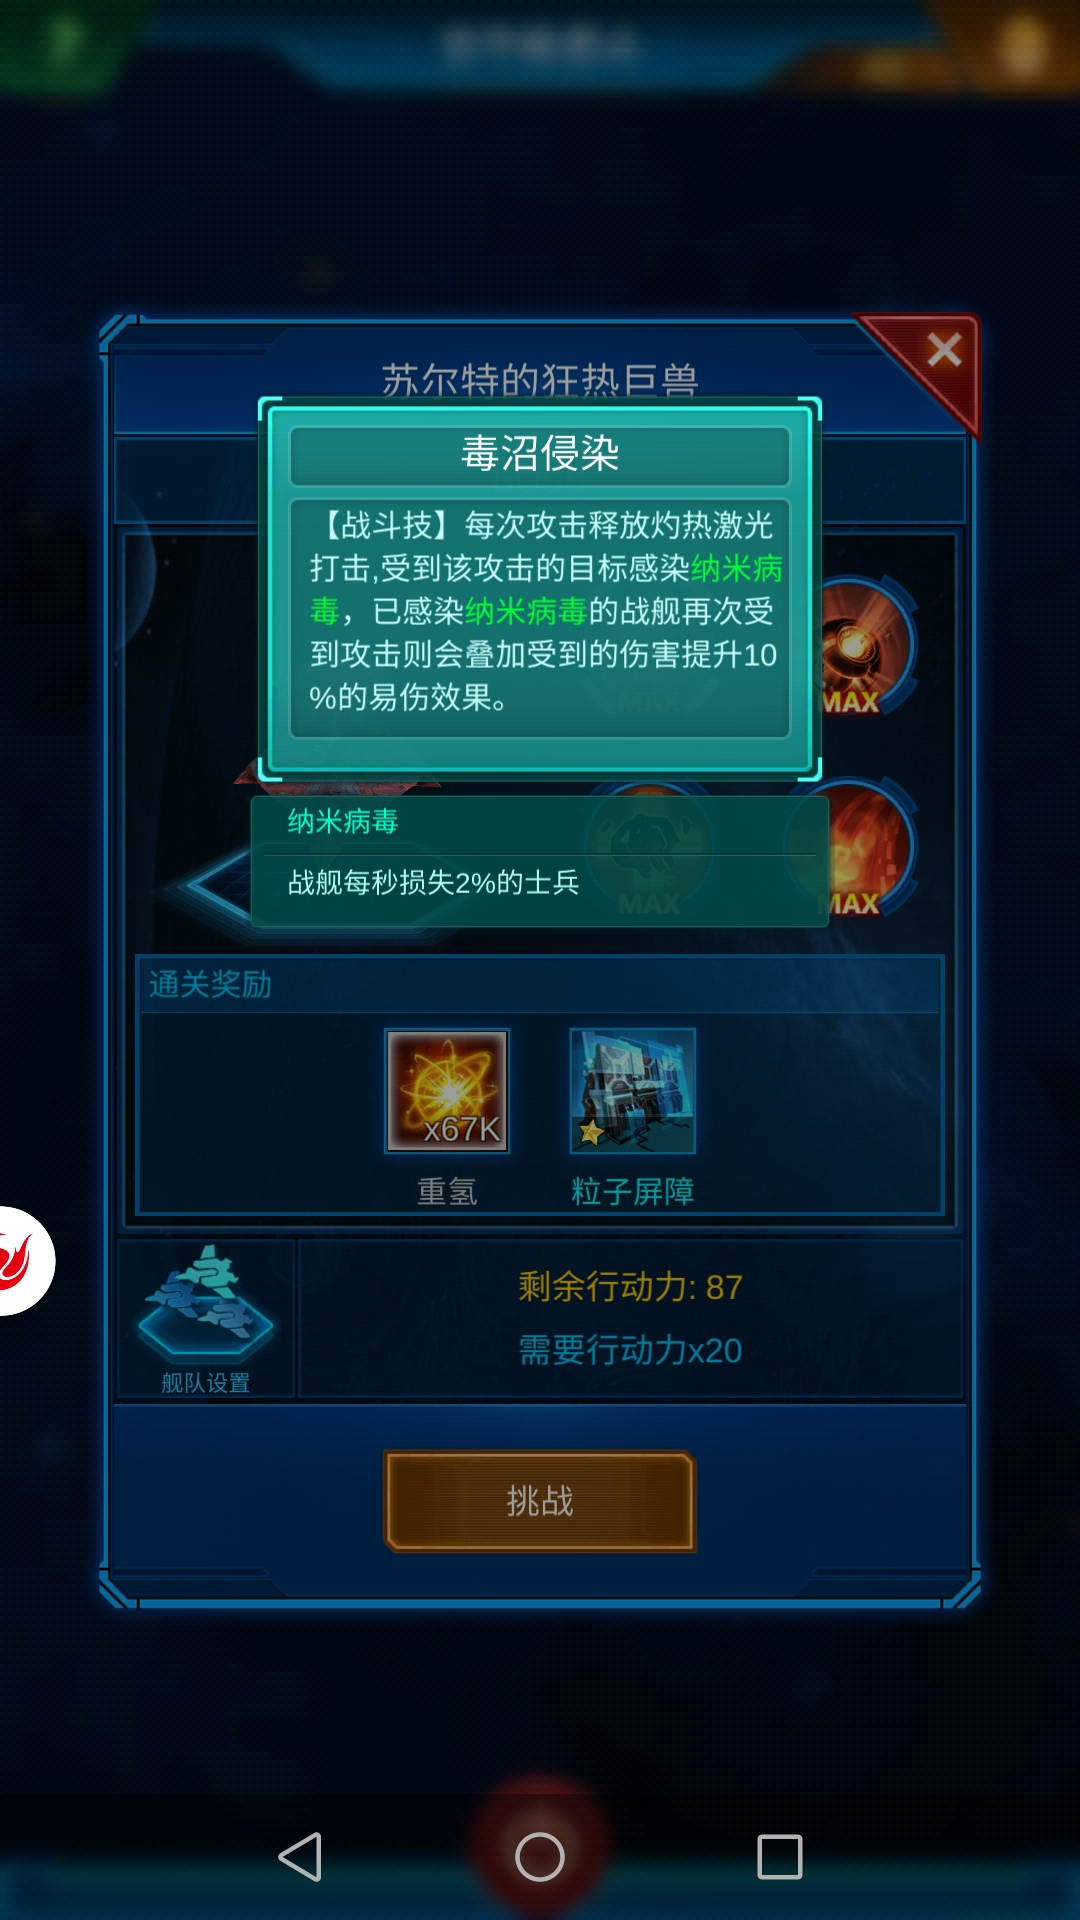 学校资料Screenshot_20200410-085646.jpg